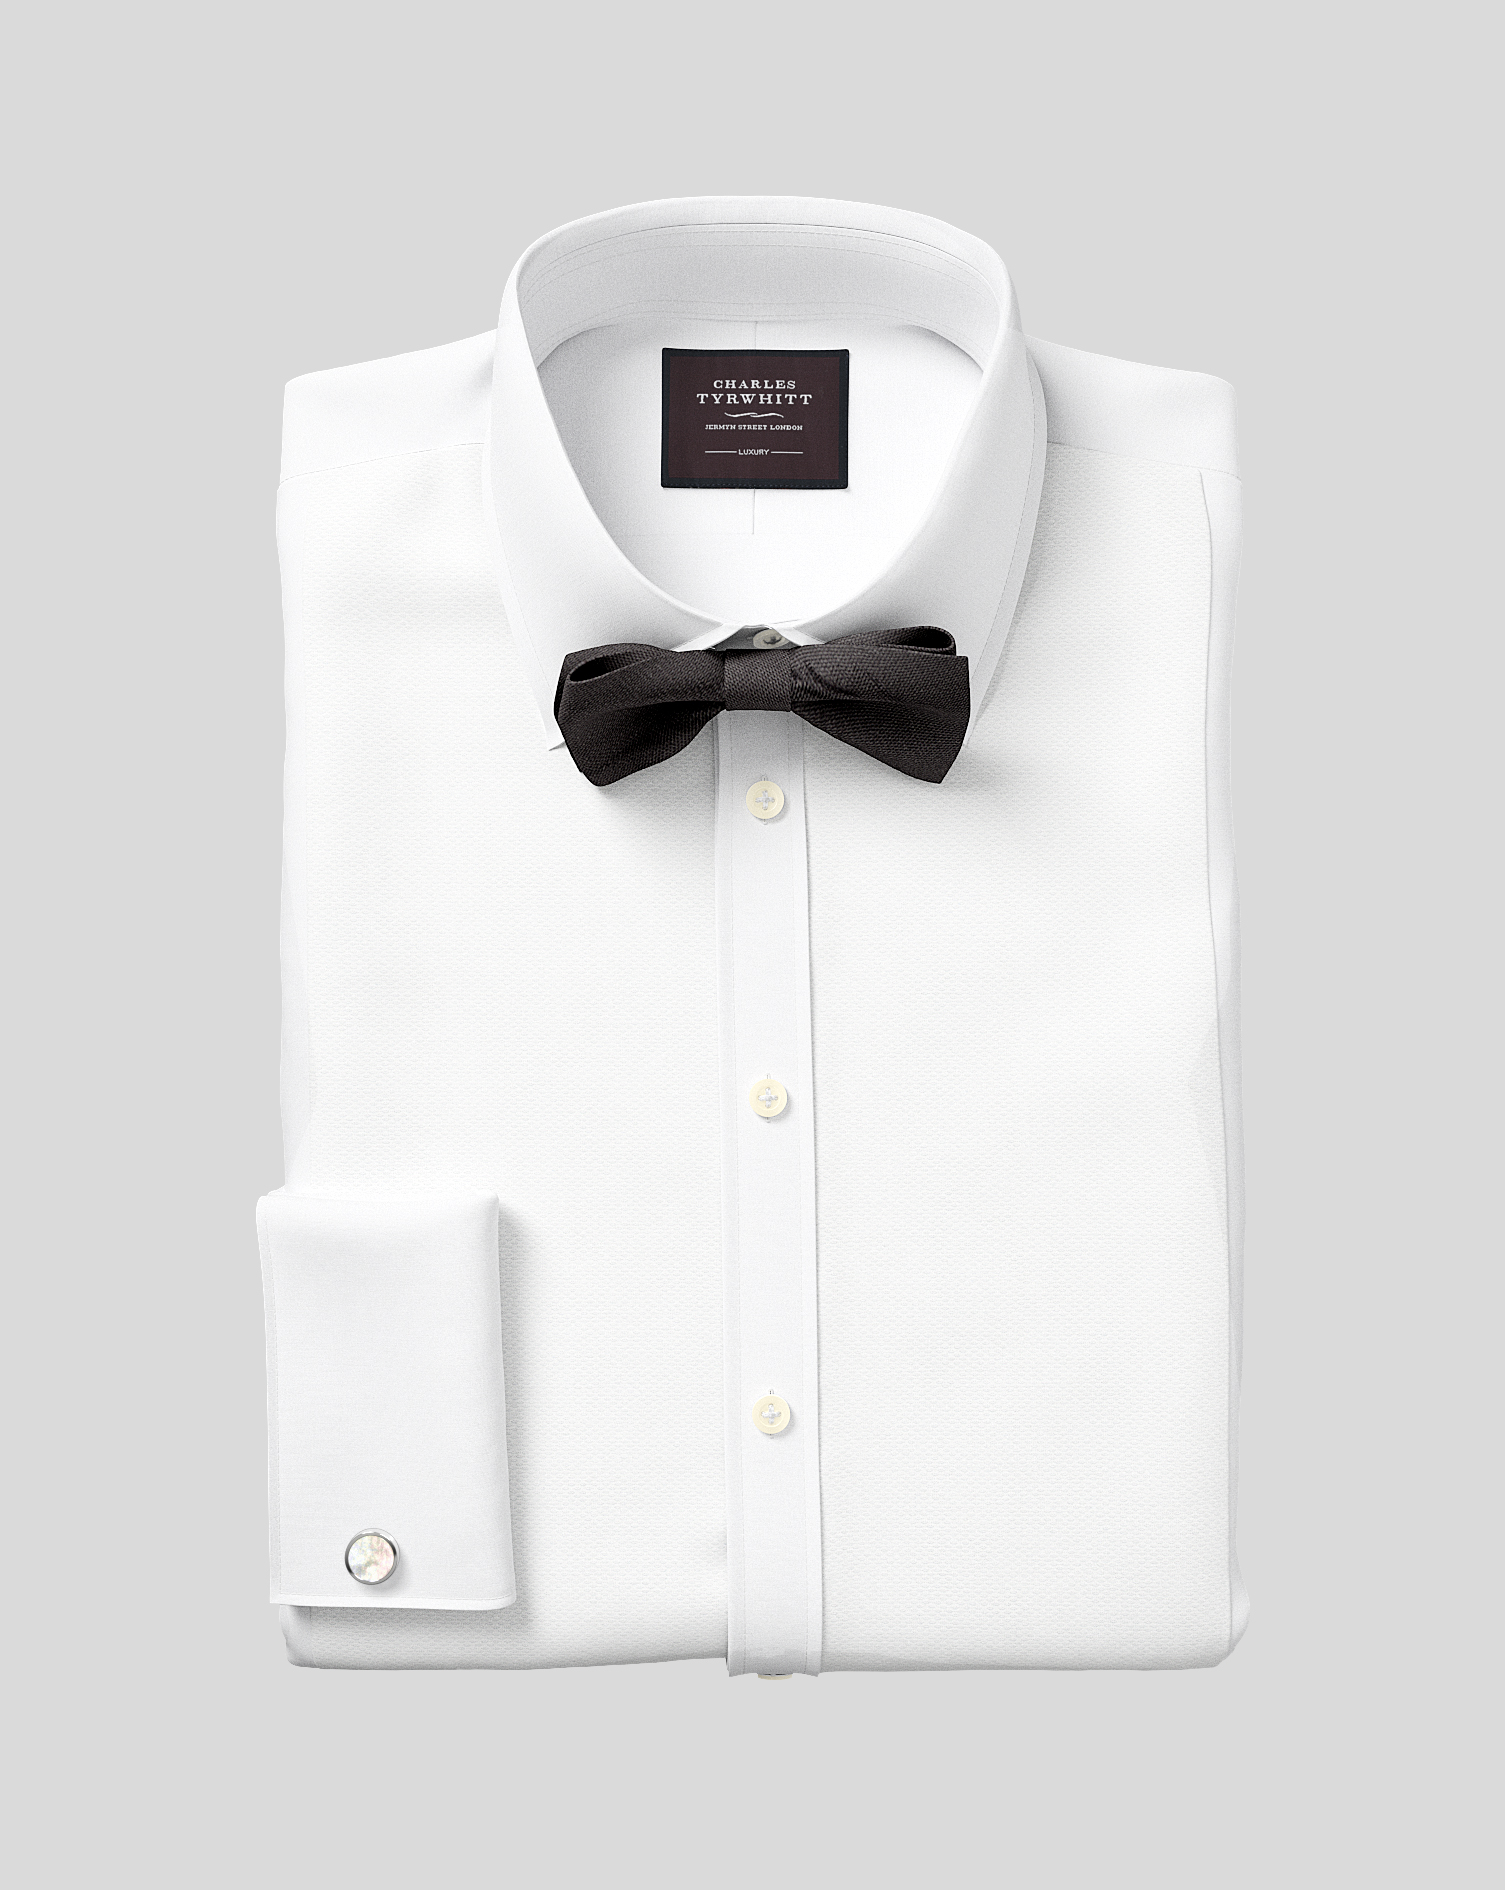 Classic Fit Luxury Marcella Bib Front White Evening Egyptian Cotton Formal Shirt Double Cuff Size 16